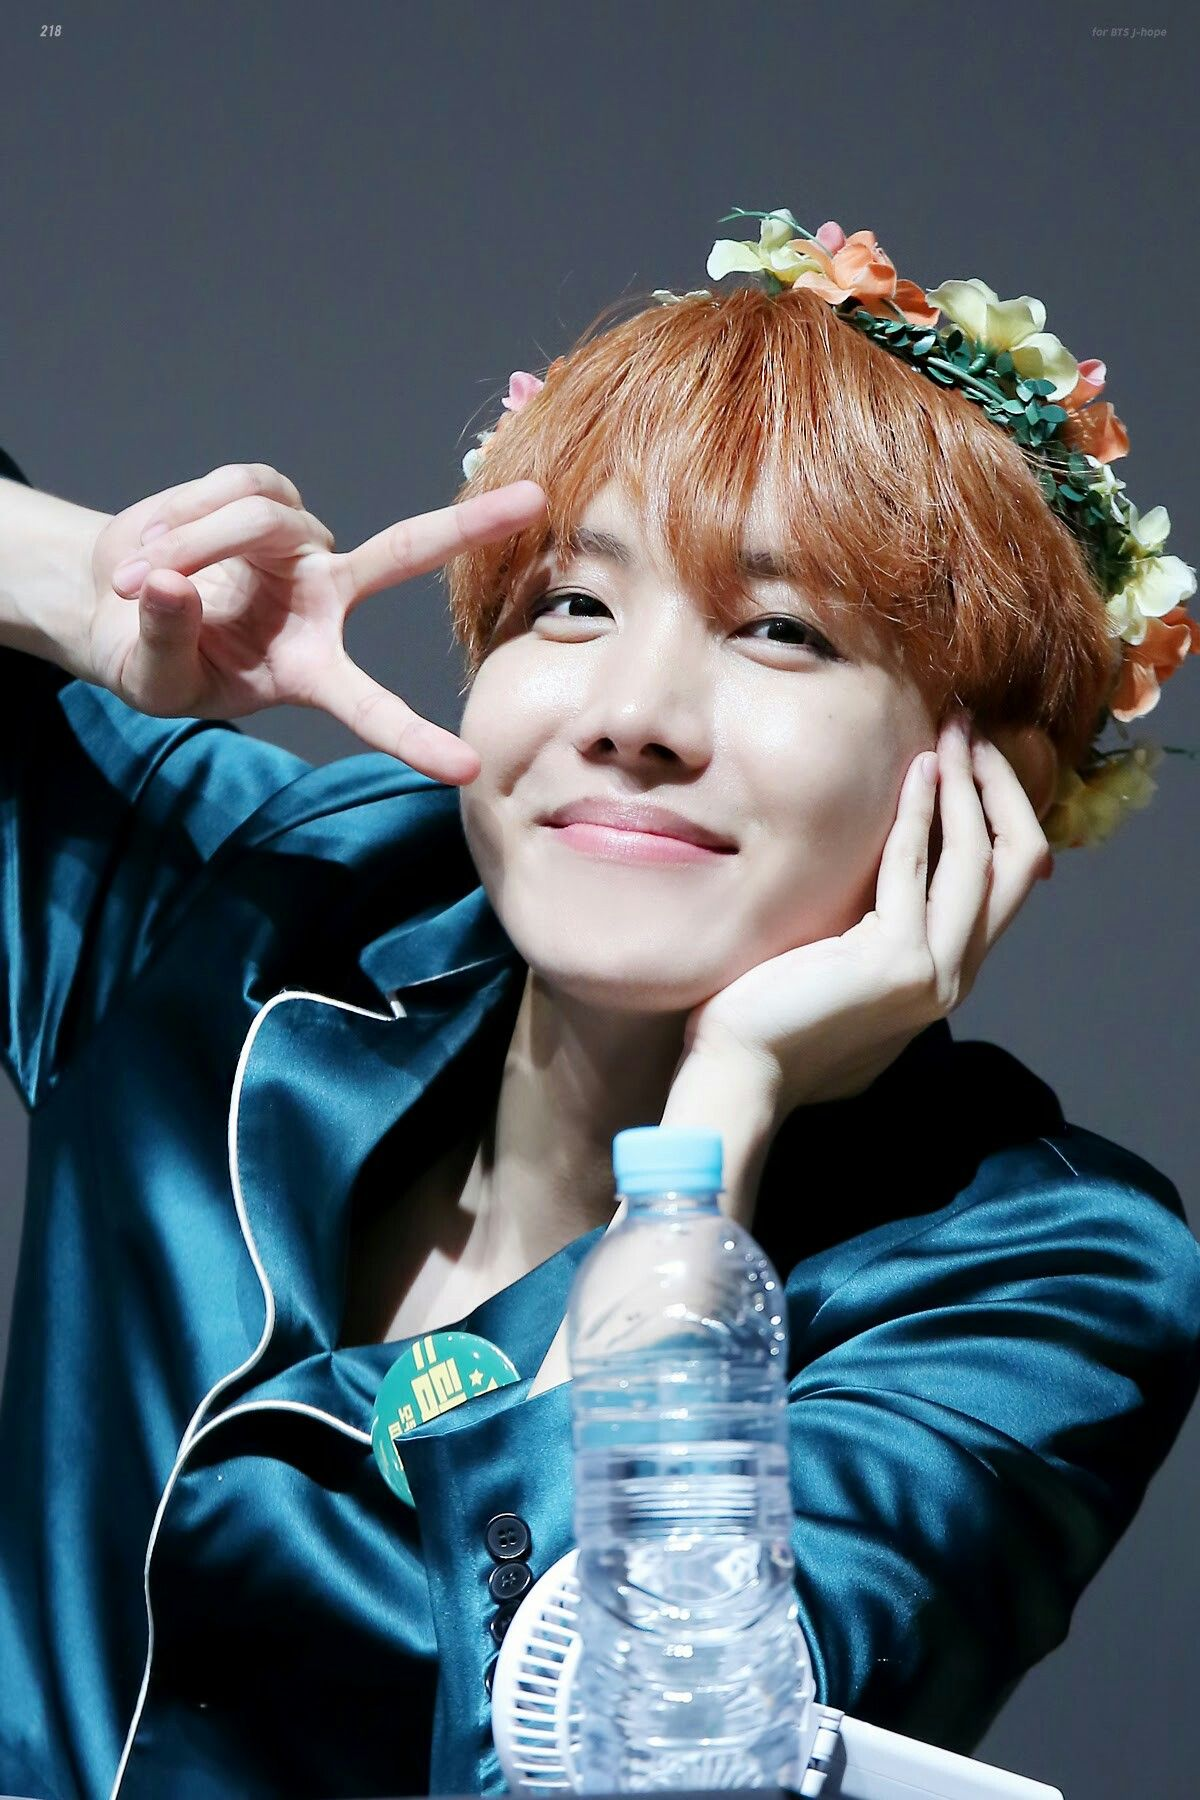 Bts J Hope Cute